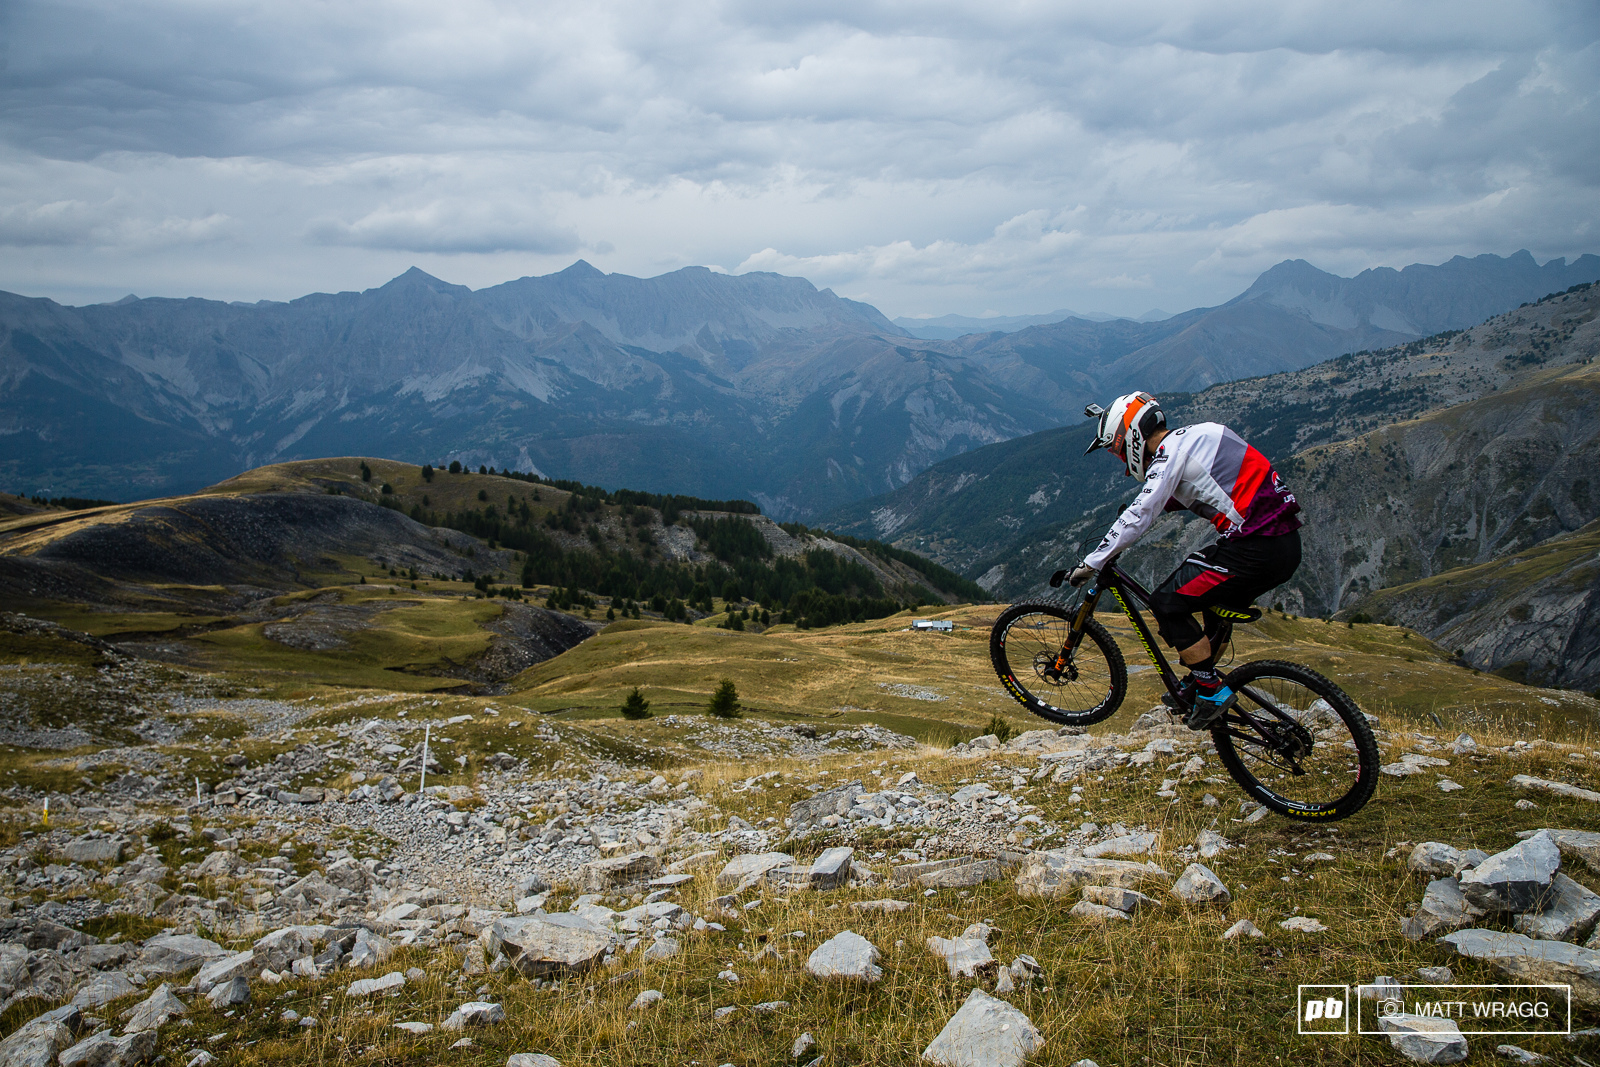 Seb Claquin is still suffering from a sore hand after his rodeo-related accident in Crested Butte. The 1 100m drop stage three is going to be a real test for him but he s nothing if not tough.